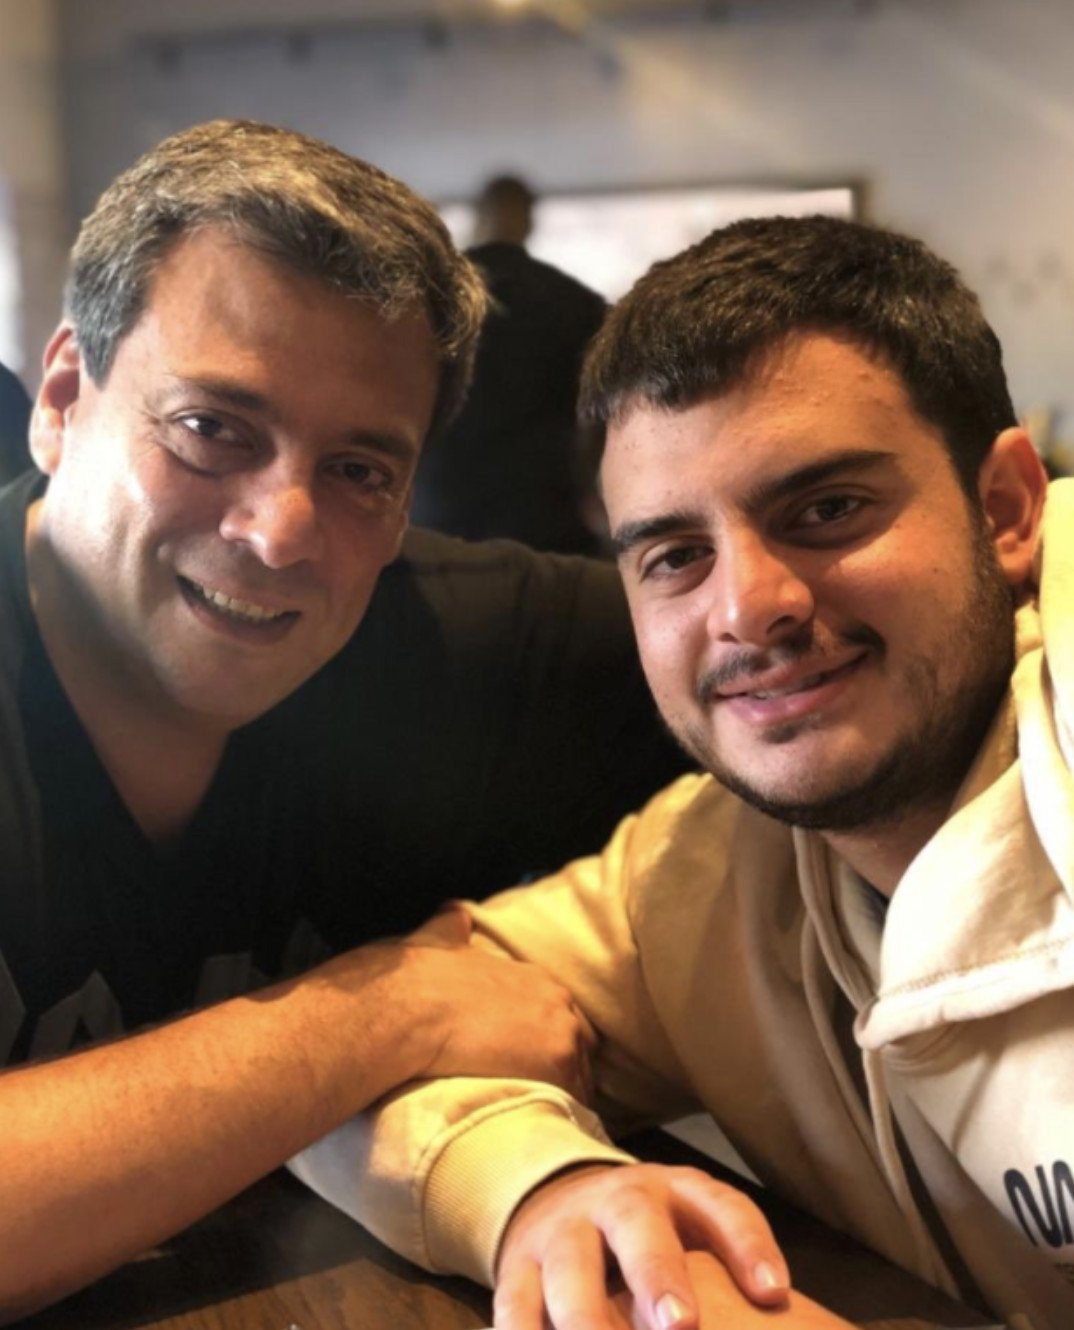 - By Mauricio Sulaimán – Son of José Sulaimán – WBC President. I traveled with my wife, Christiane, to drop off our oldest son to school to start his college career at Northeastern University in Boston, Massachusetts.